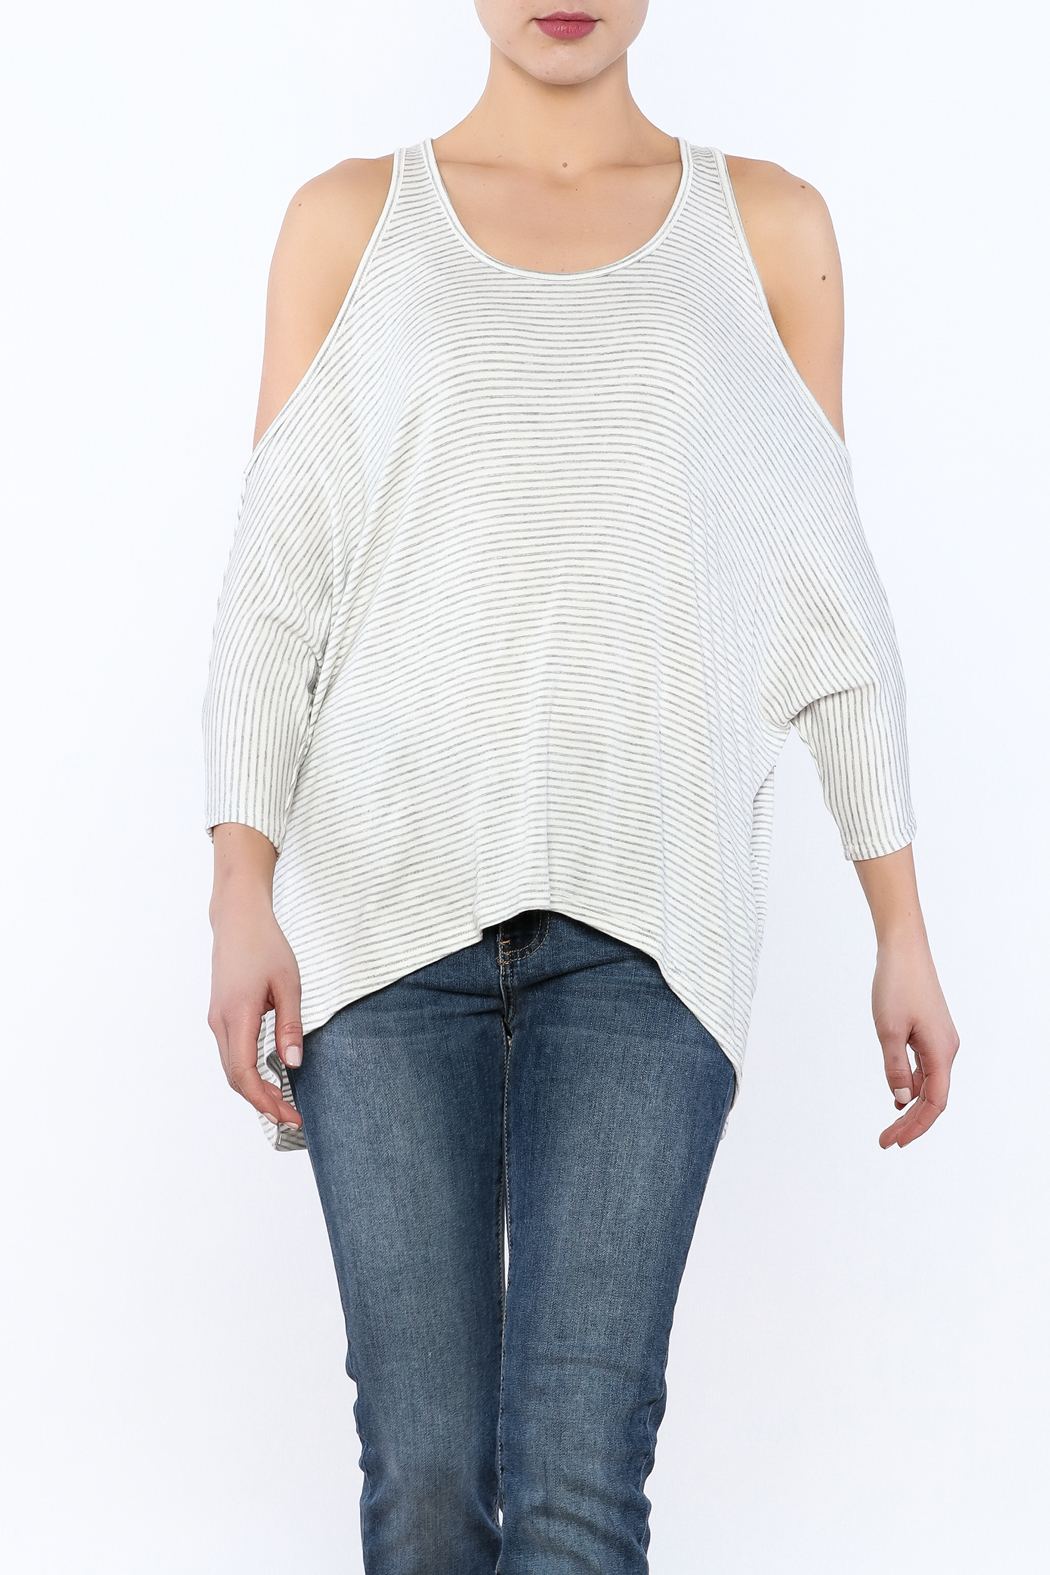 4dc363a1a1182 Elan Cold Shoulder Dolman Sleeve Top from Montauk by Kailani ...